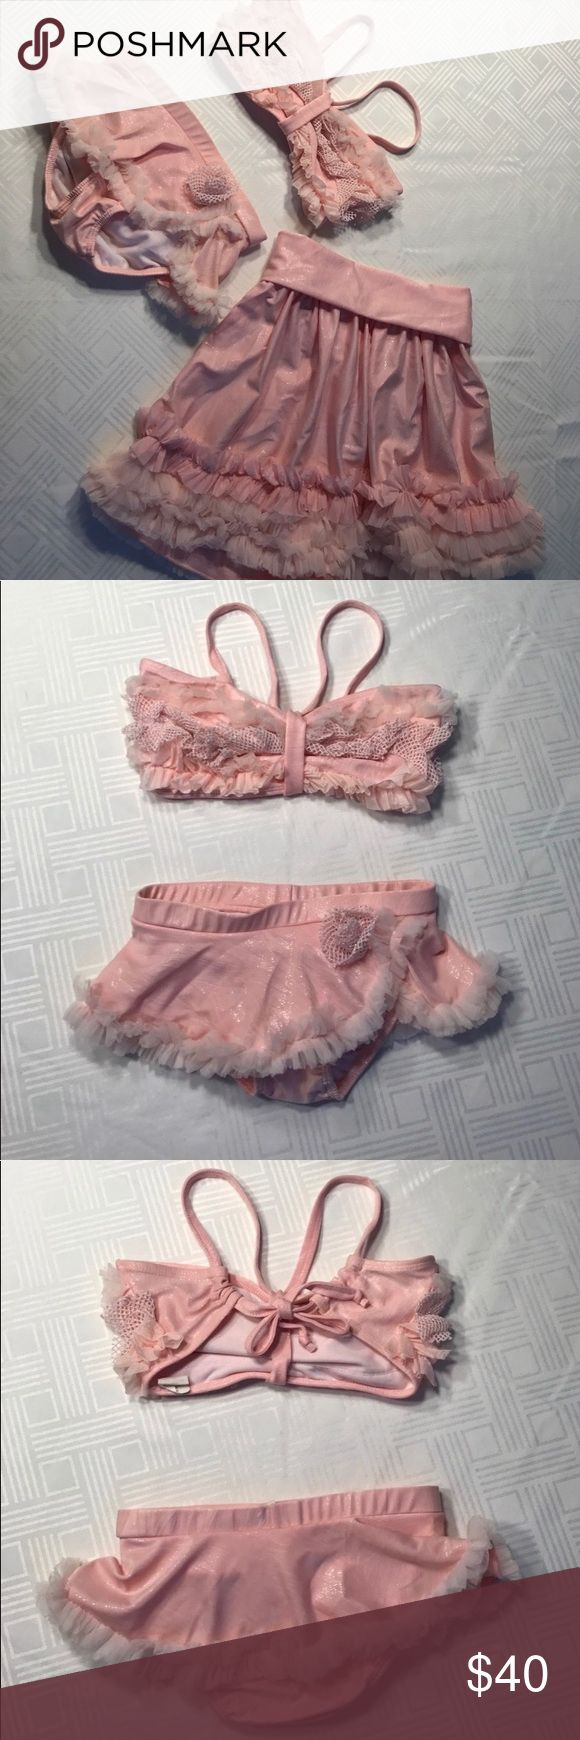 🎉BOGO 1/2 OFF🎉Frankie & Daisy 3pc. pink swimsuit Beautiful Frankie & Daisy 3pc.Girls pink swimsuit size 7. This beautiful bikini bathing suit with matching skirt is made with sparkly light pink fabric, silver and pink sparkly mesh, and soft tulle. It is sure to be a show stopper! :) Frankie & Daisy (Corky & Company) Swim Bikinis